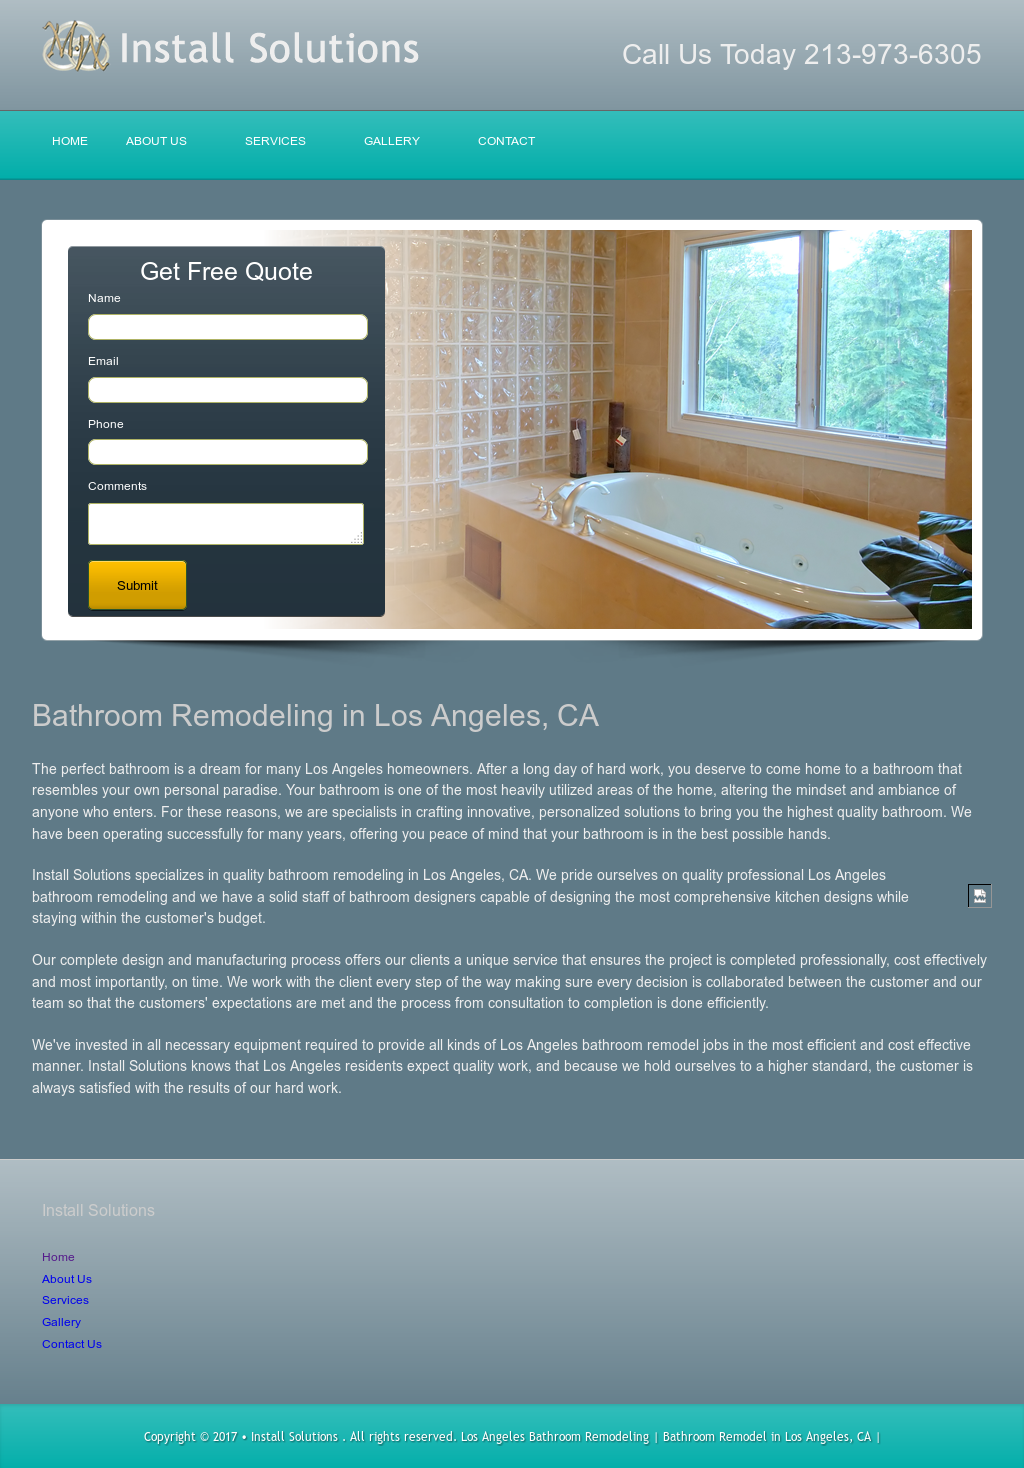 Los Angeles Bathroom Remodeling Competitors, Revenue and Employees ...